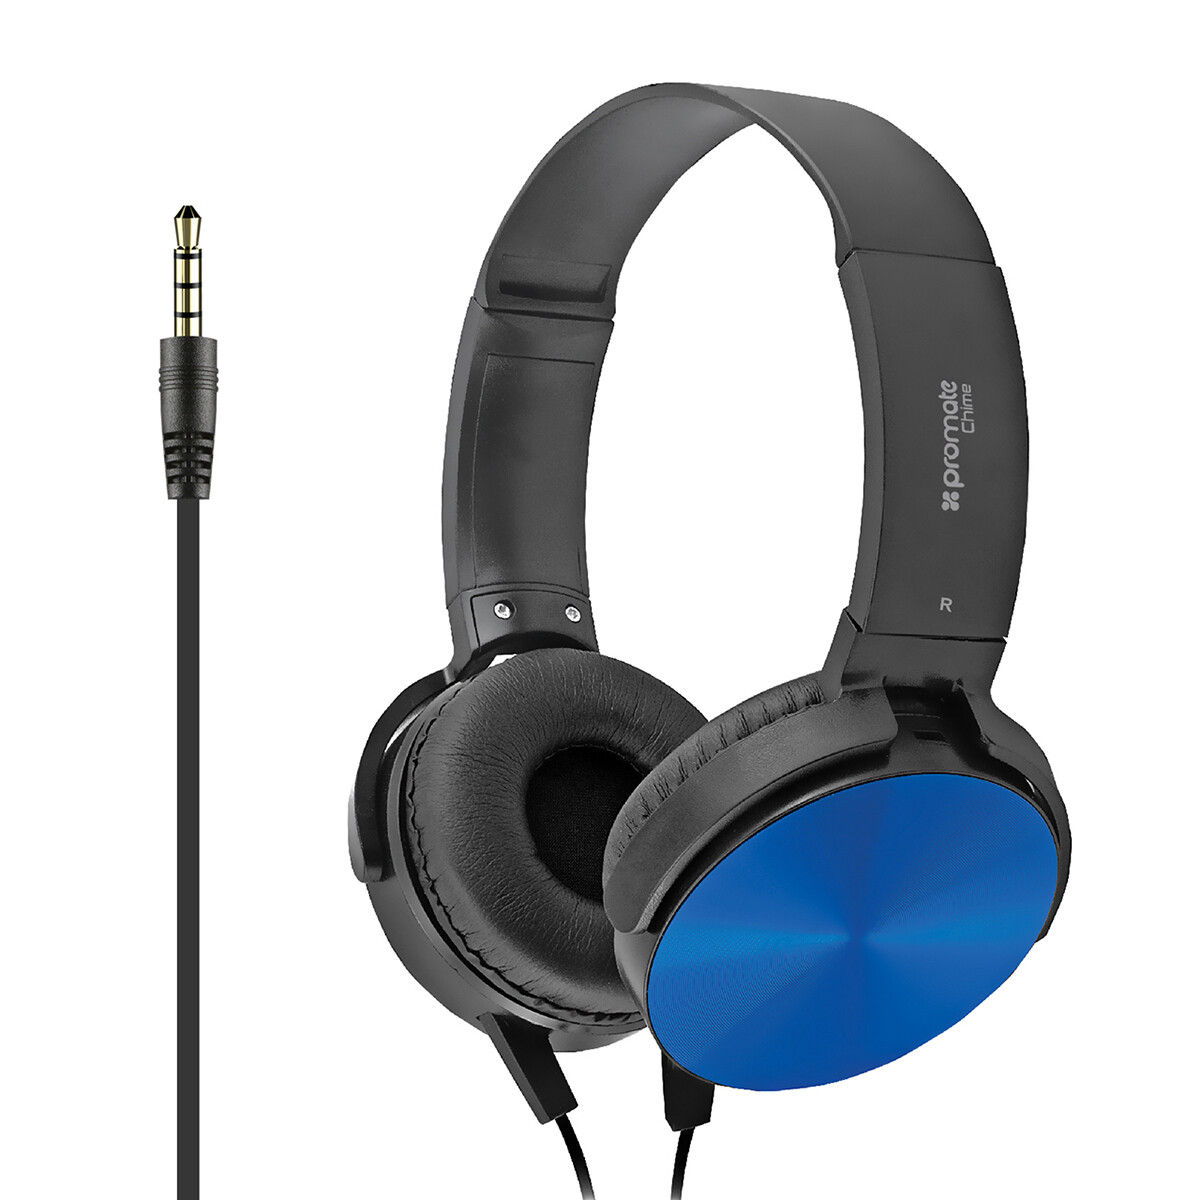 Chime Rotatable Over-the-ear Wired Stereo Headset